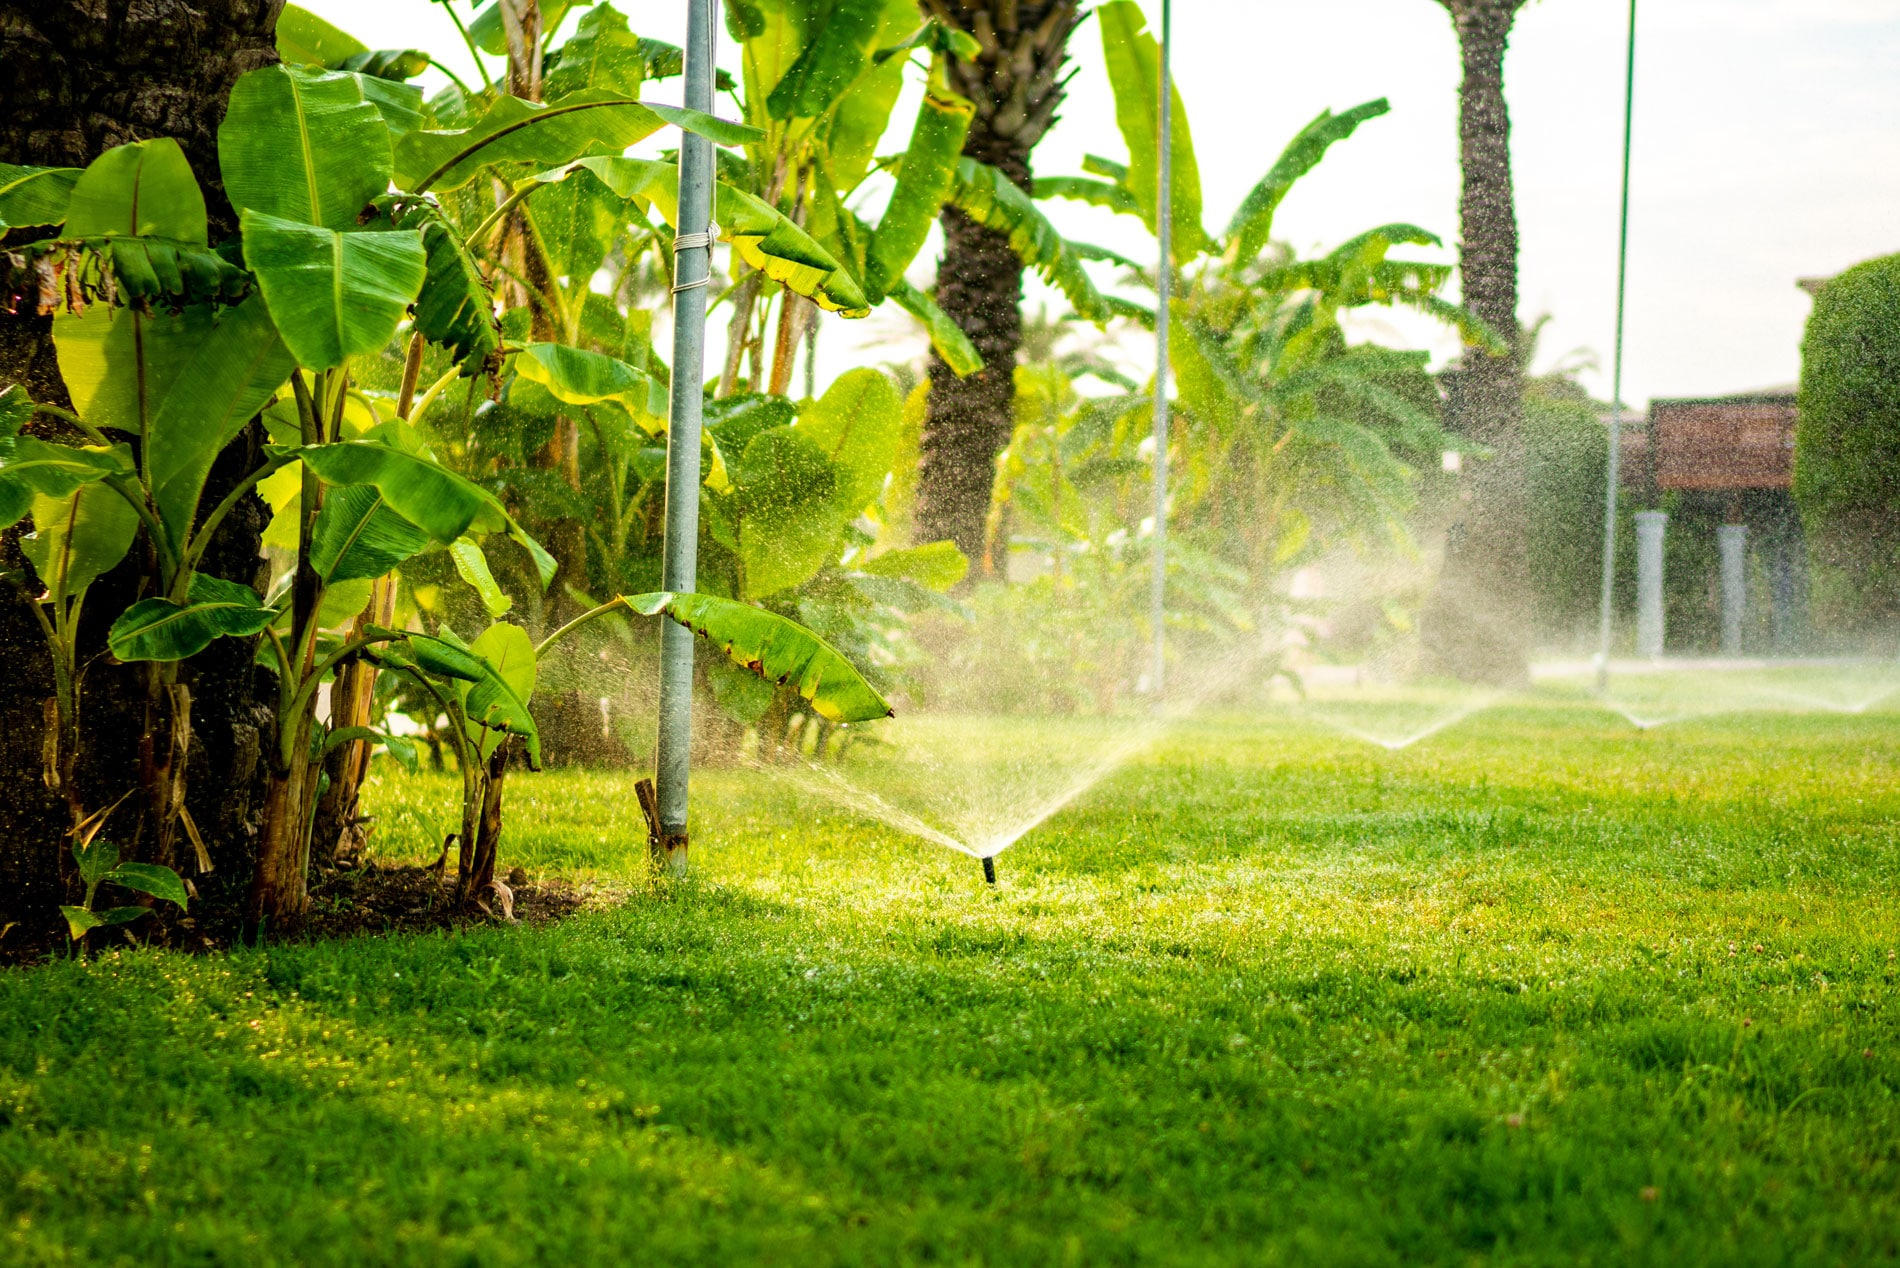 Water More With Reclaimed Water